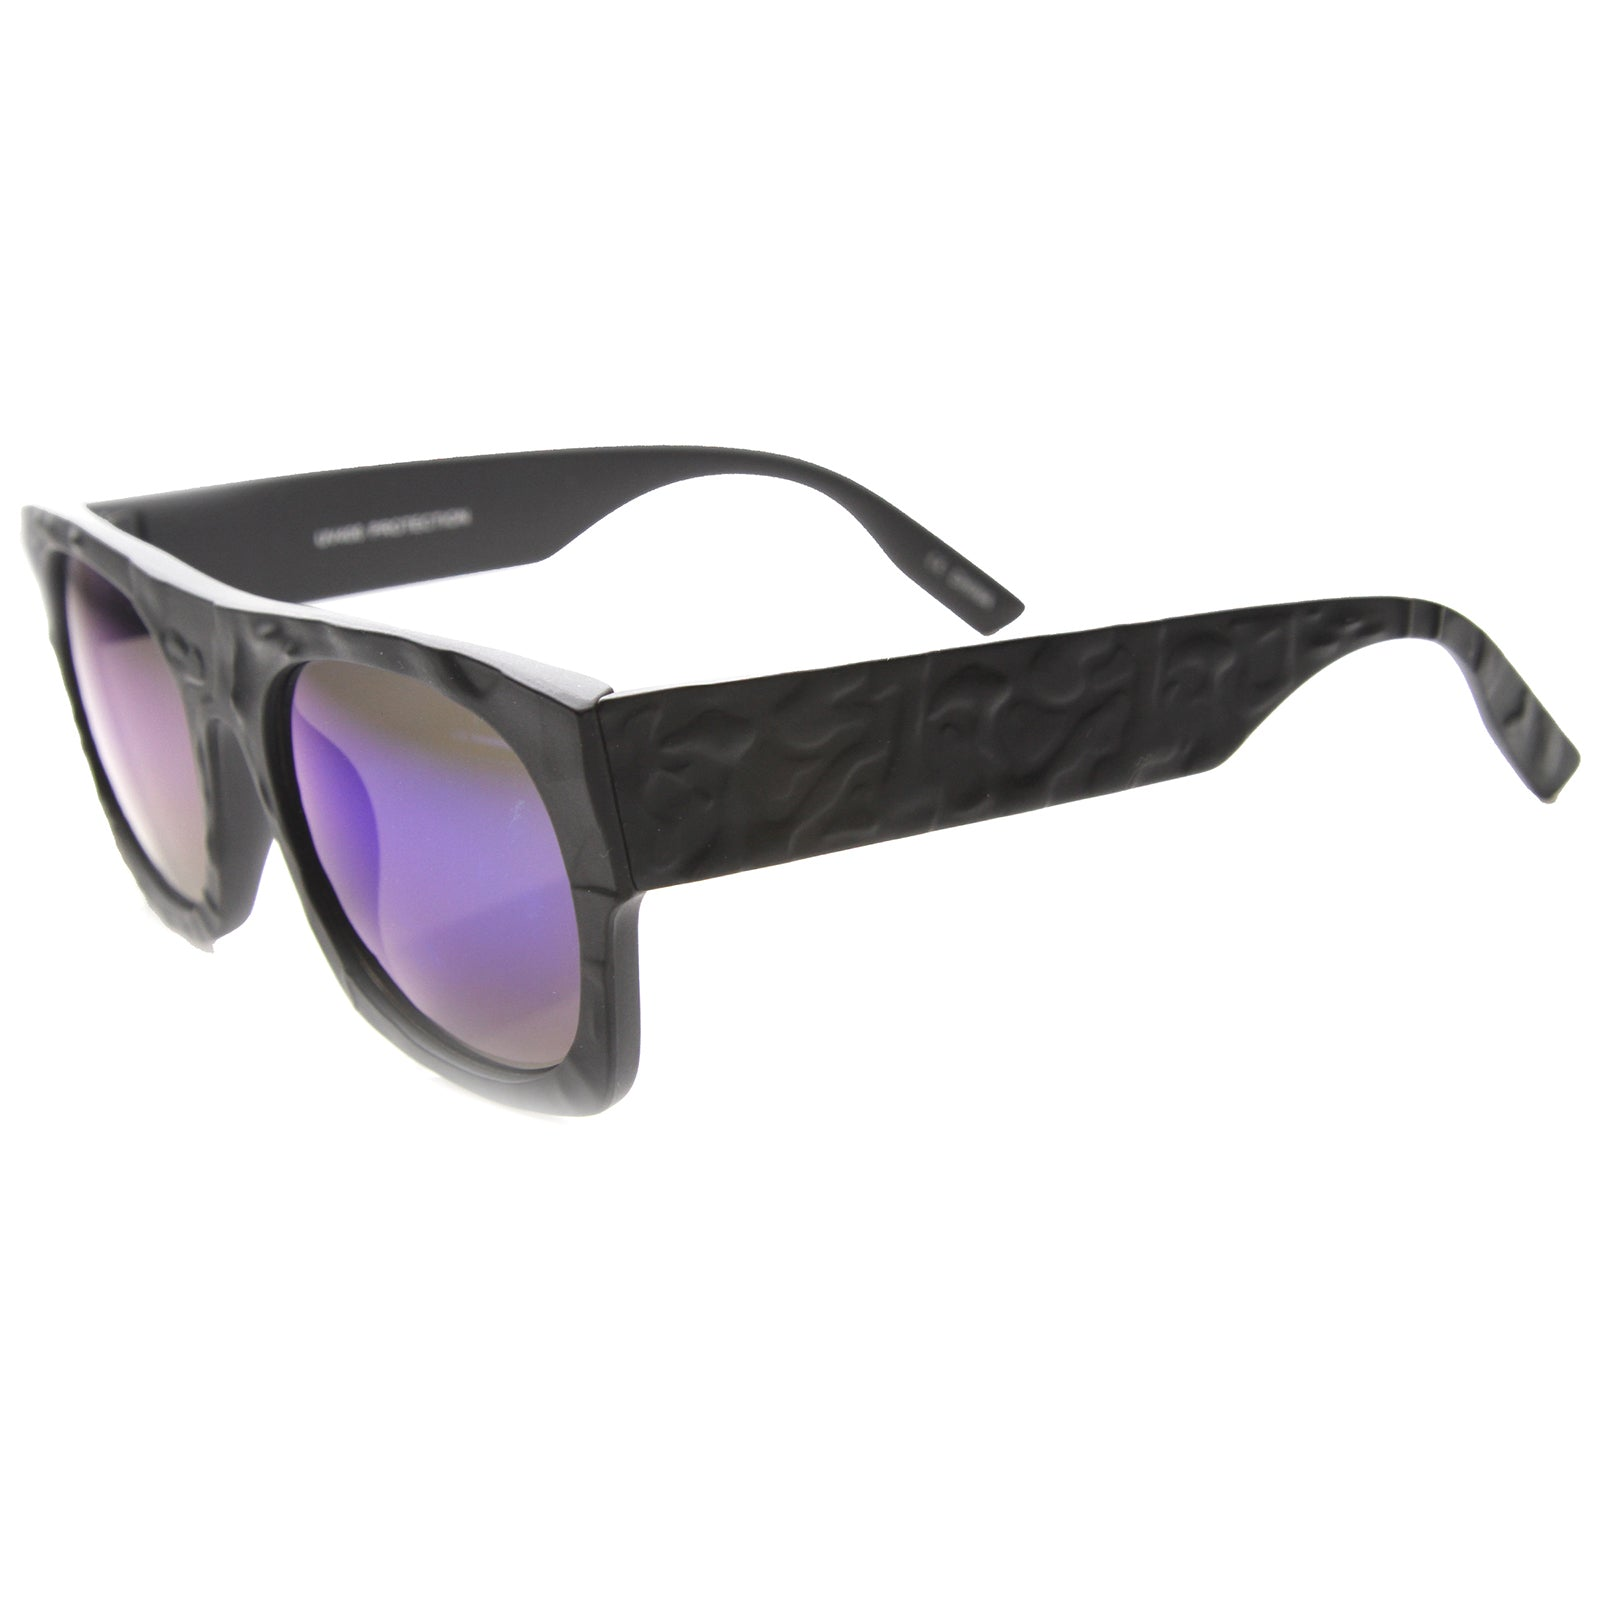 Unisex Rectangular Sunglasses With UV400 Protected Mirrored Lens - sunglass.la - 2